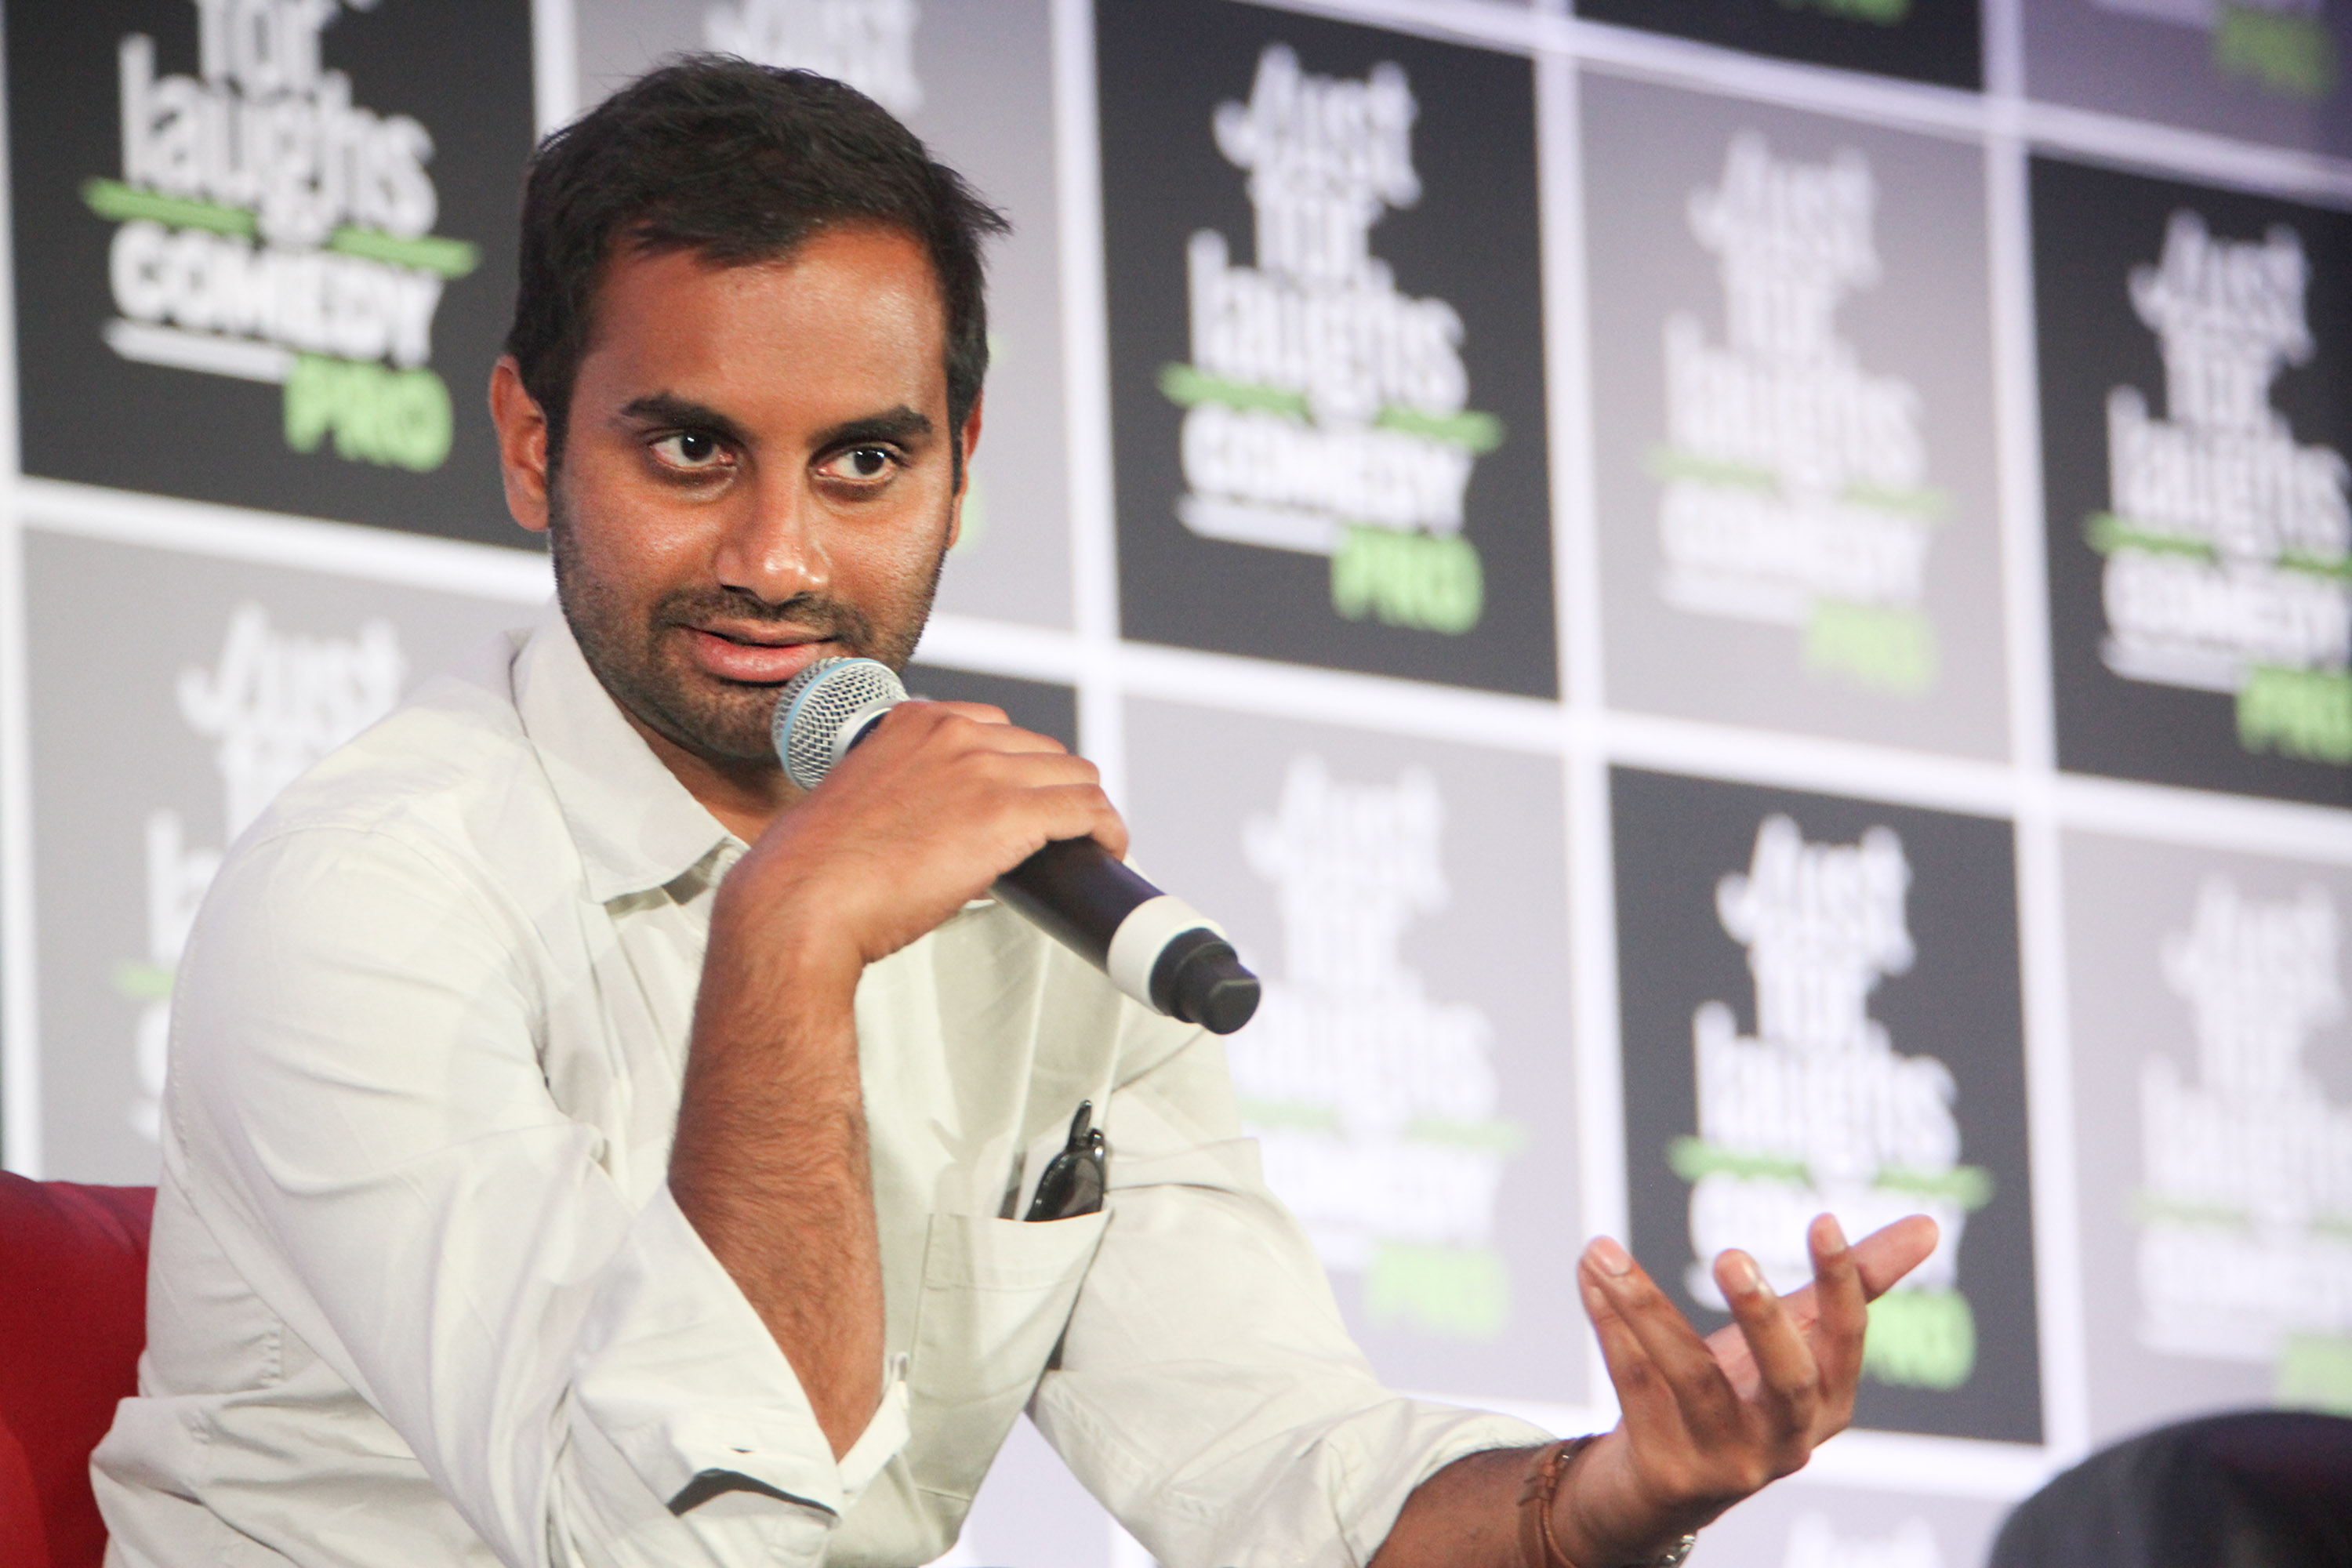 Comedian/Actor Aziz Ansari attends Master of None cast panel at Just for Laughs Comedy Festival held at The Hyatt Regency Montreal on July 29, 2016 in Montreal, Canada.